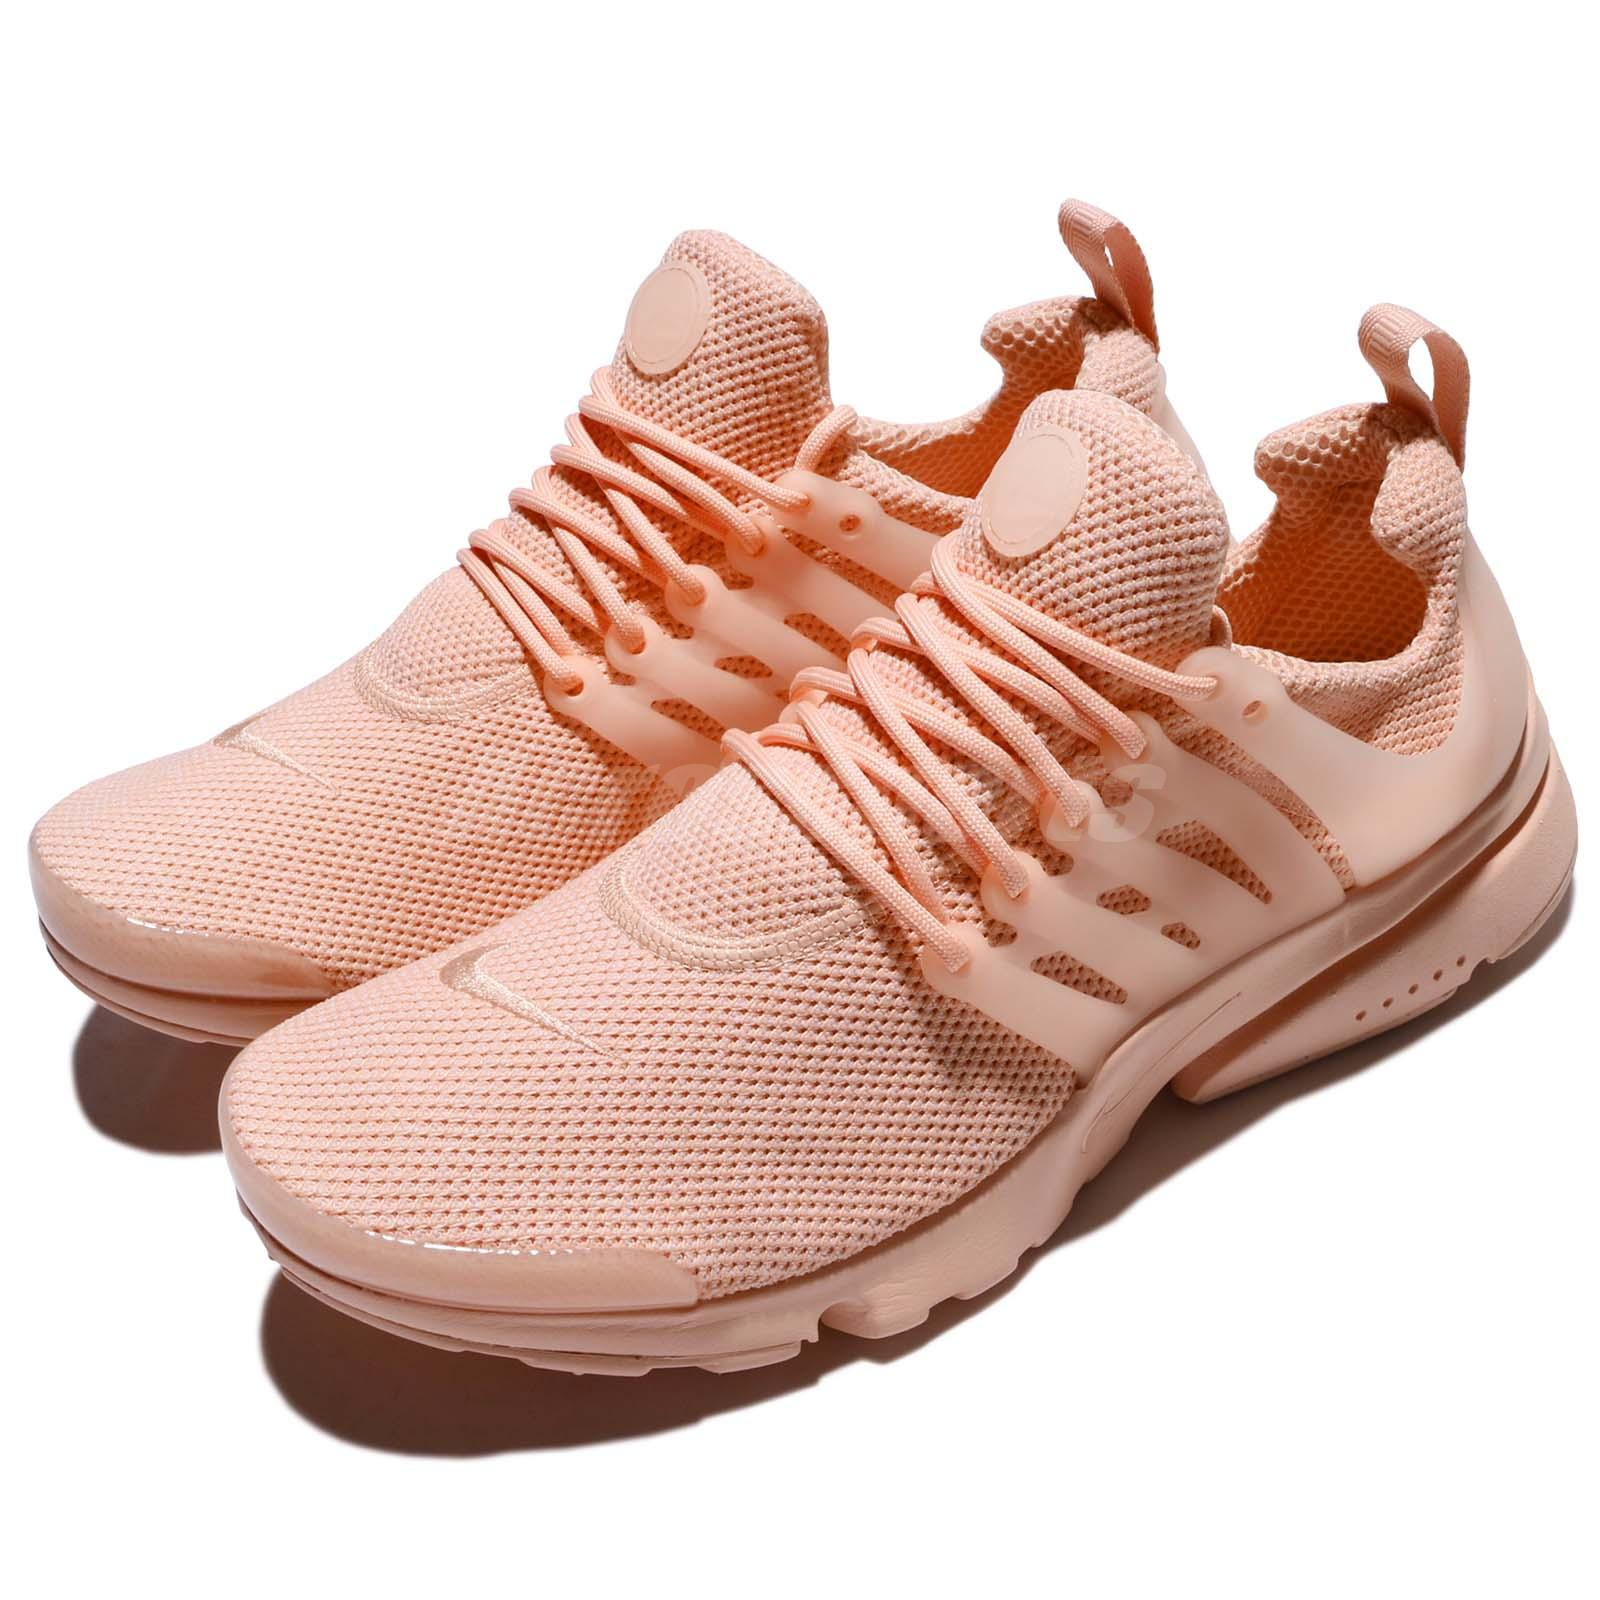 714677c4af74 Details about Nike Air Presto Ultra BR Breathe Arctic Orange Men Shoes  Sneakers 898020-800